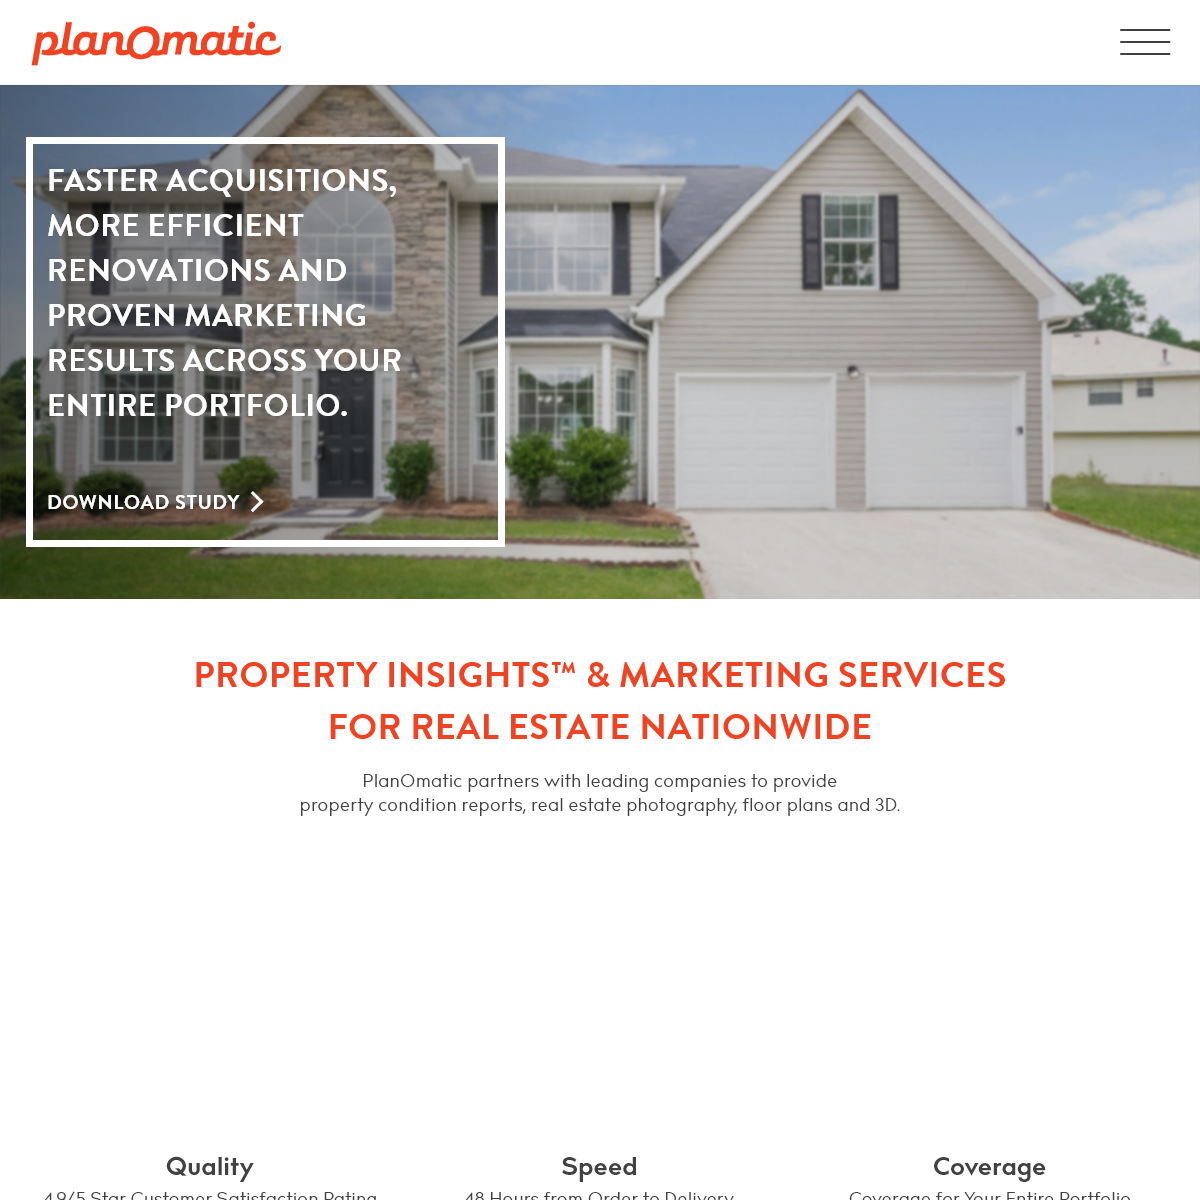 Real Estate Photography and Property Insights™ - PlanOmatic